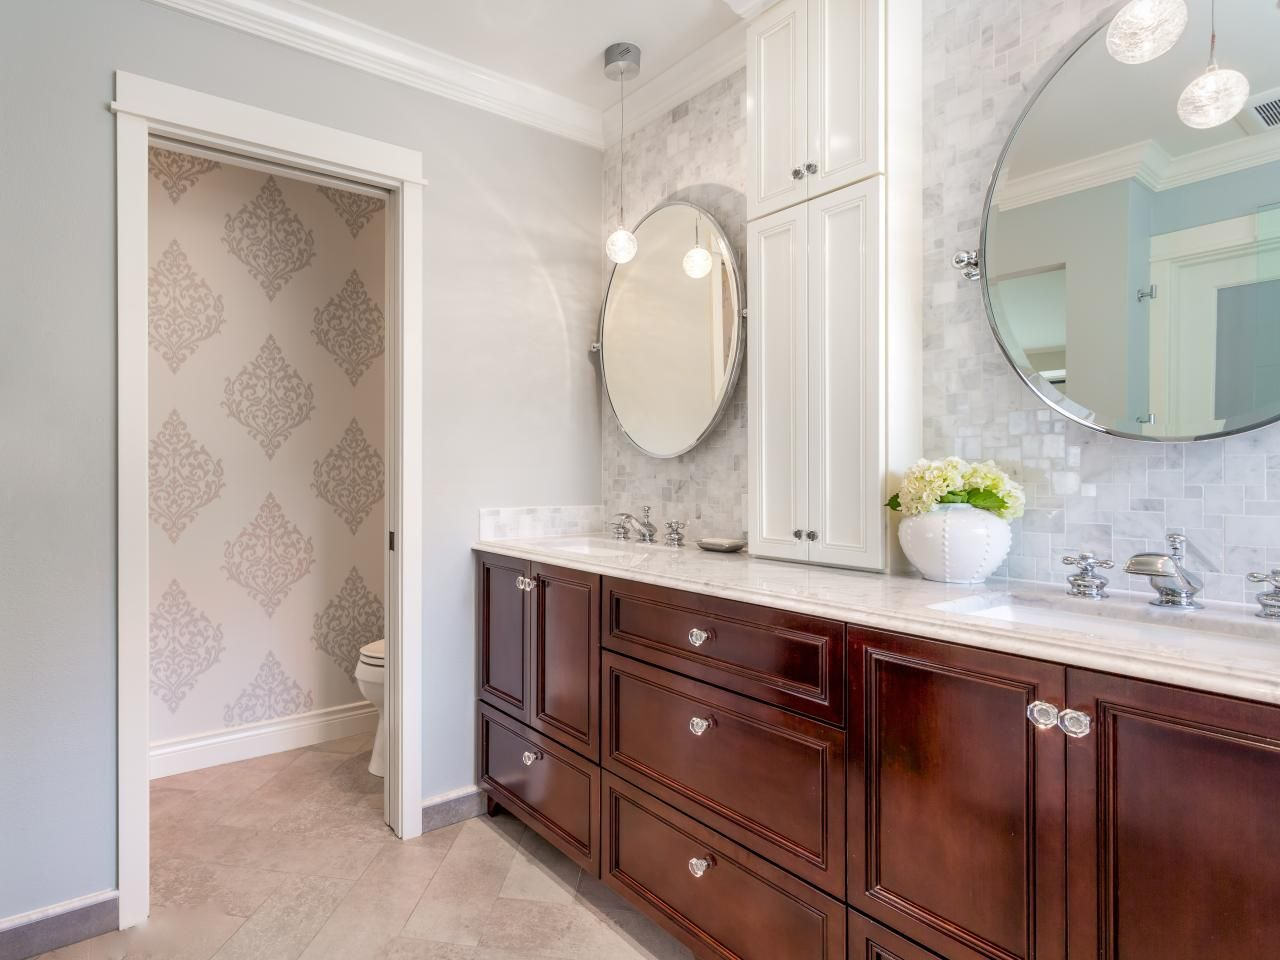 Transitional Master Bathroom With Spacious Cherry Wood Vanity | HGTV